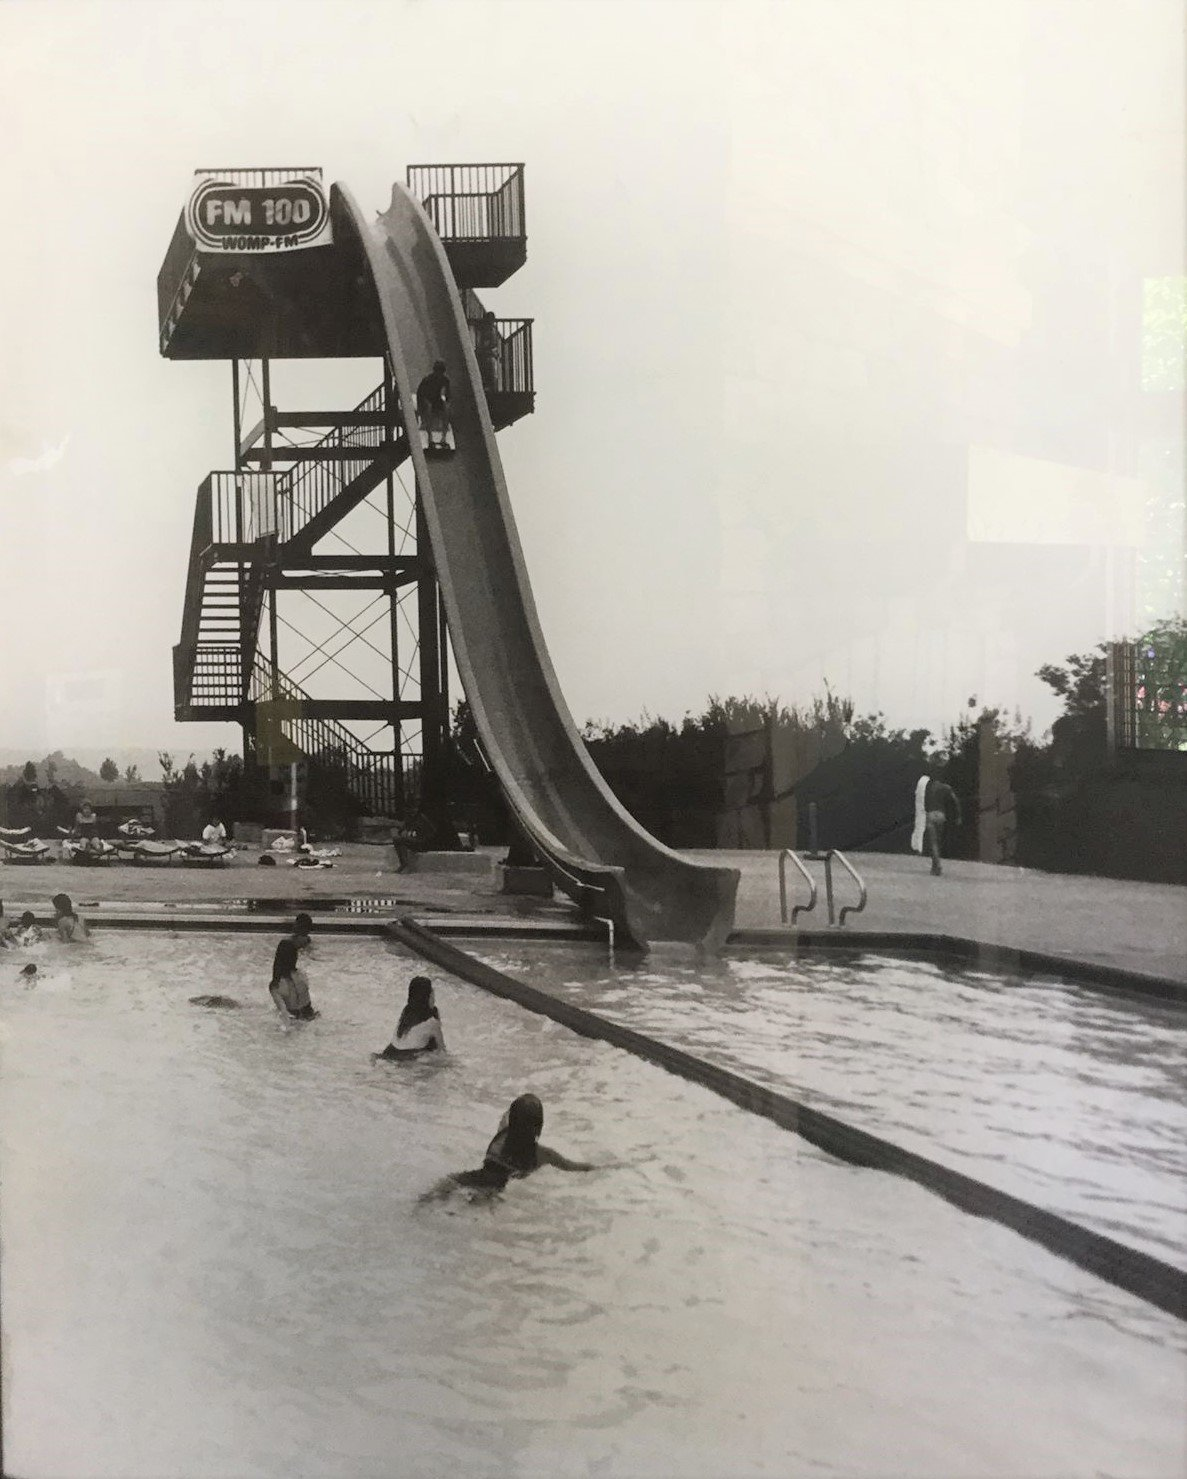 The water slide of the 1980s. (Photo courtesy of Grand Vue Park)